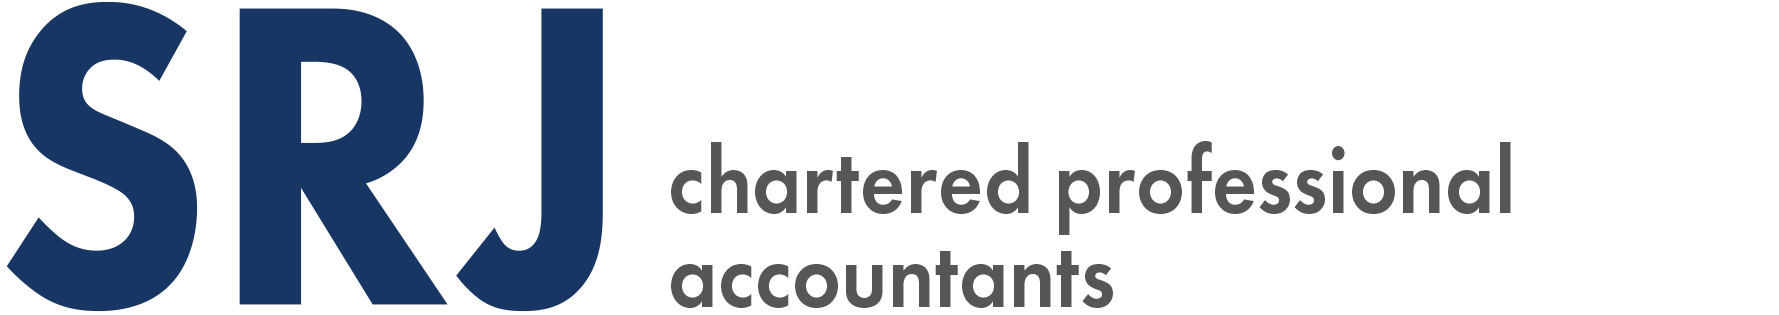 SRJ Professional Chartered Accountants